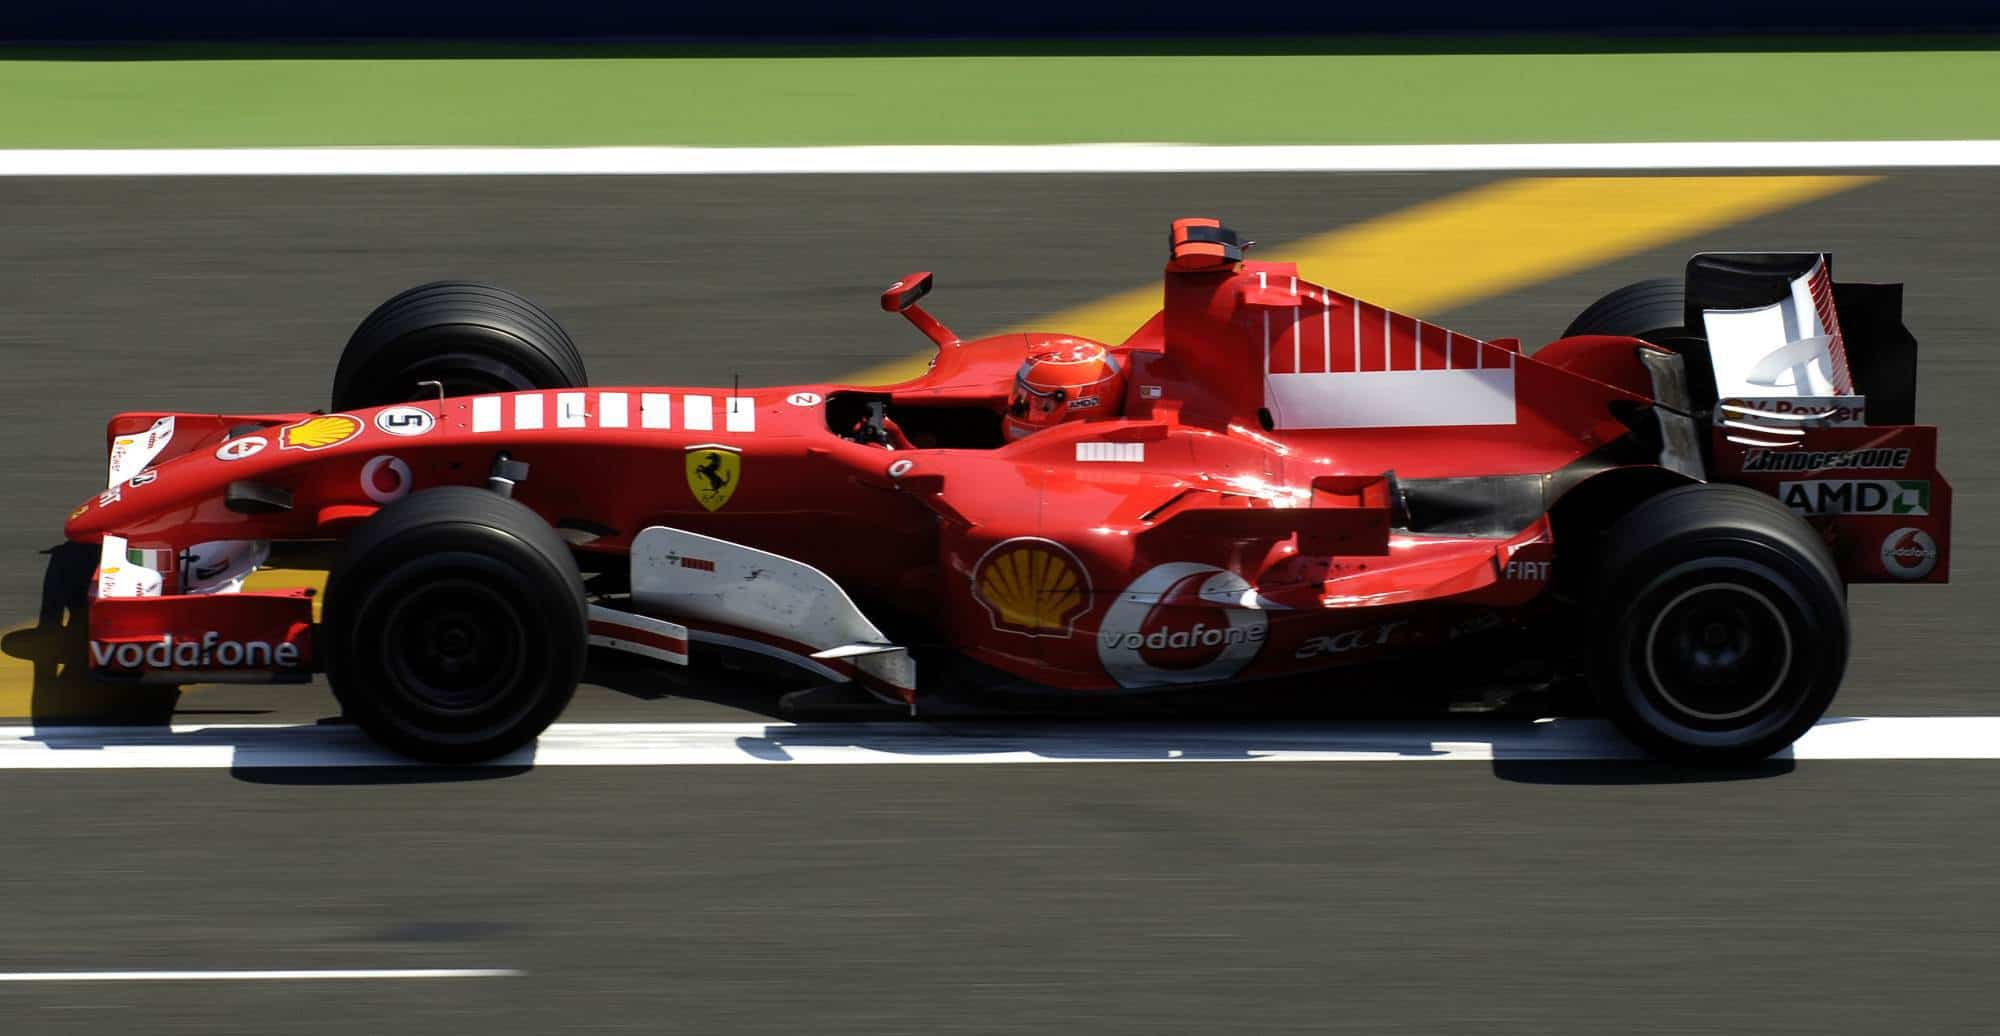 Michael Schumacher Ferrari F248F1 French GP F1 2006 Photo Ferrari